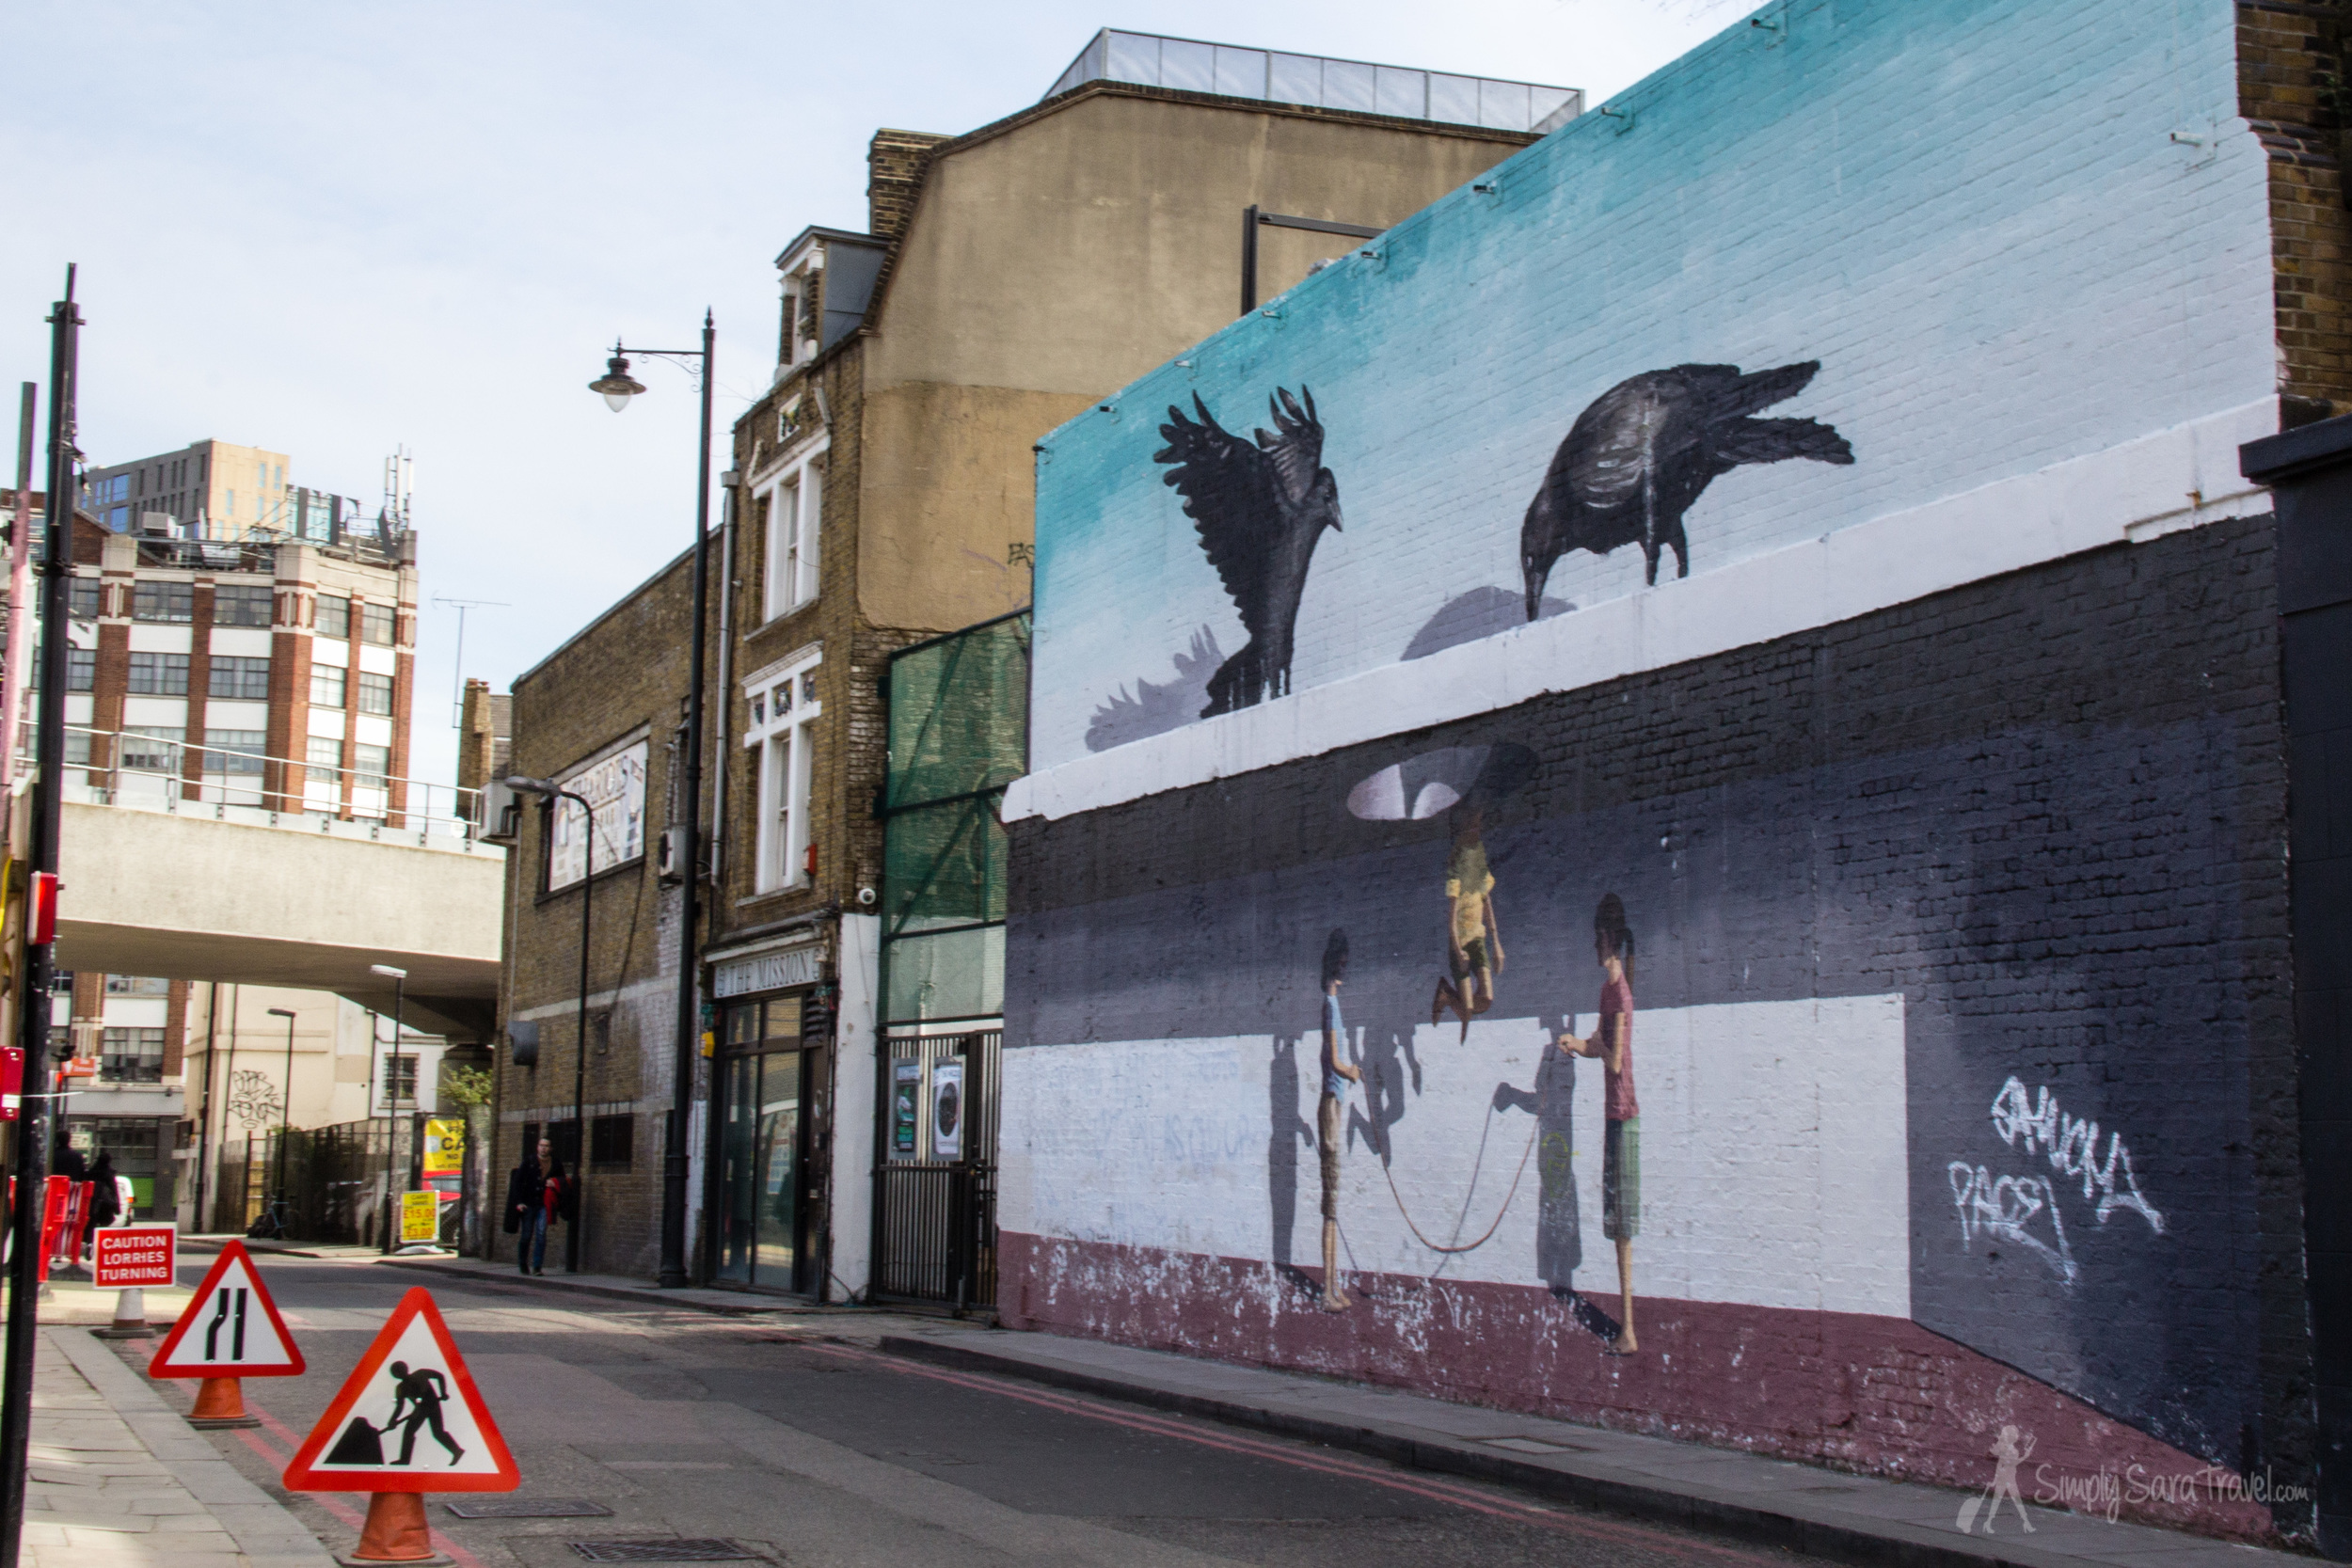 Street art in Shoreditch, London, England, birds and jump rope